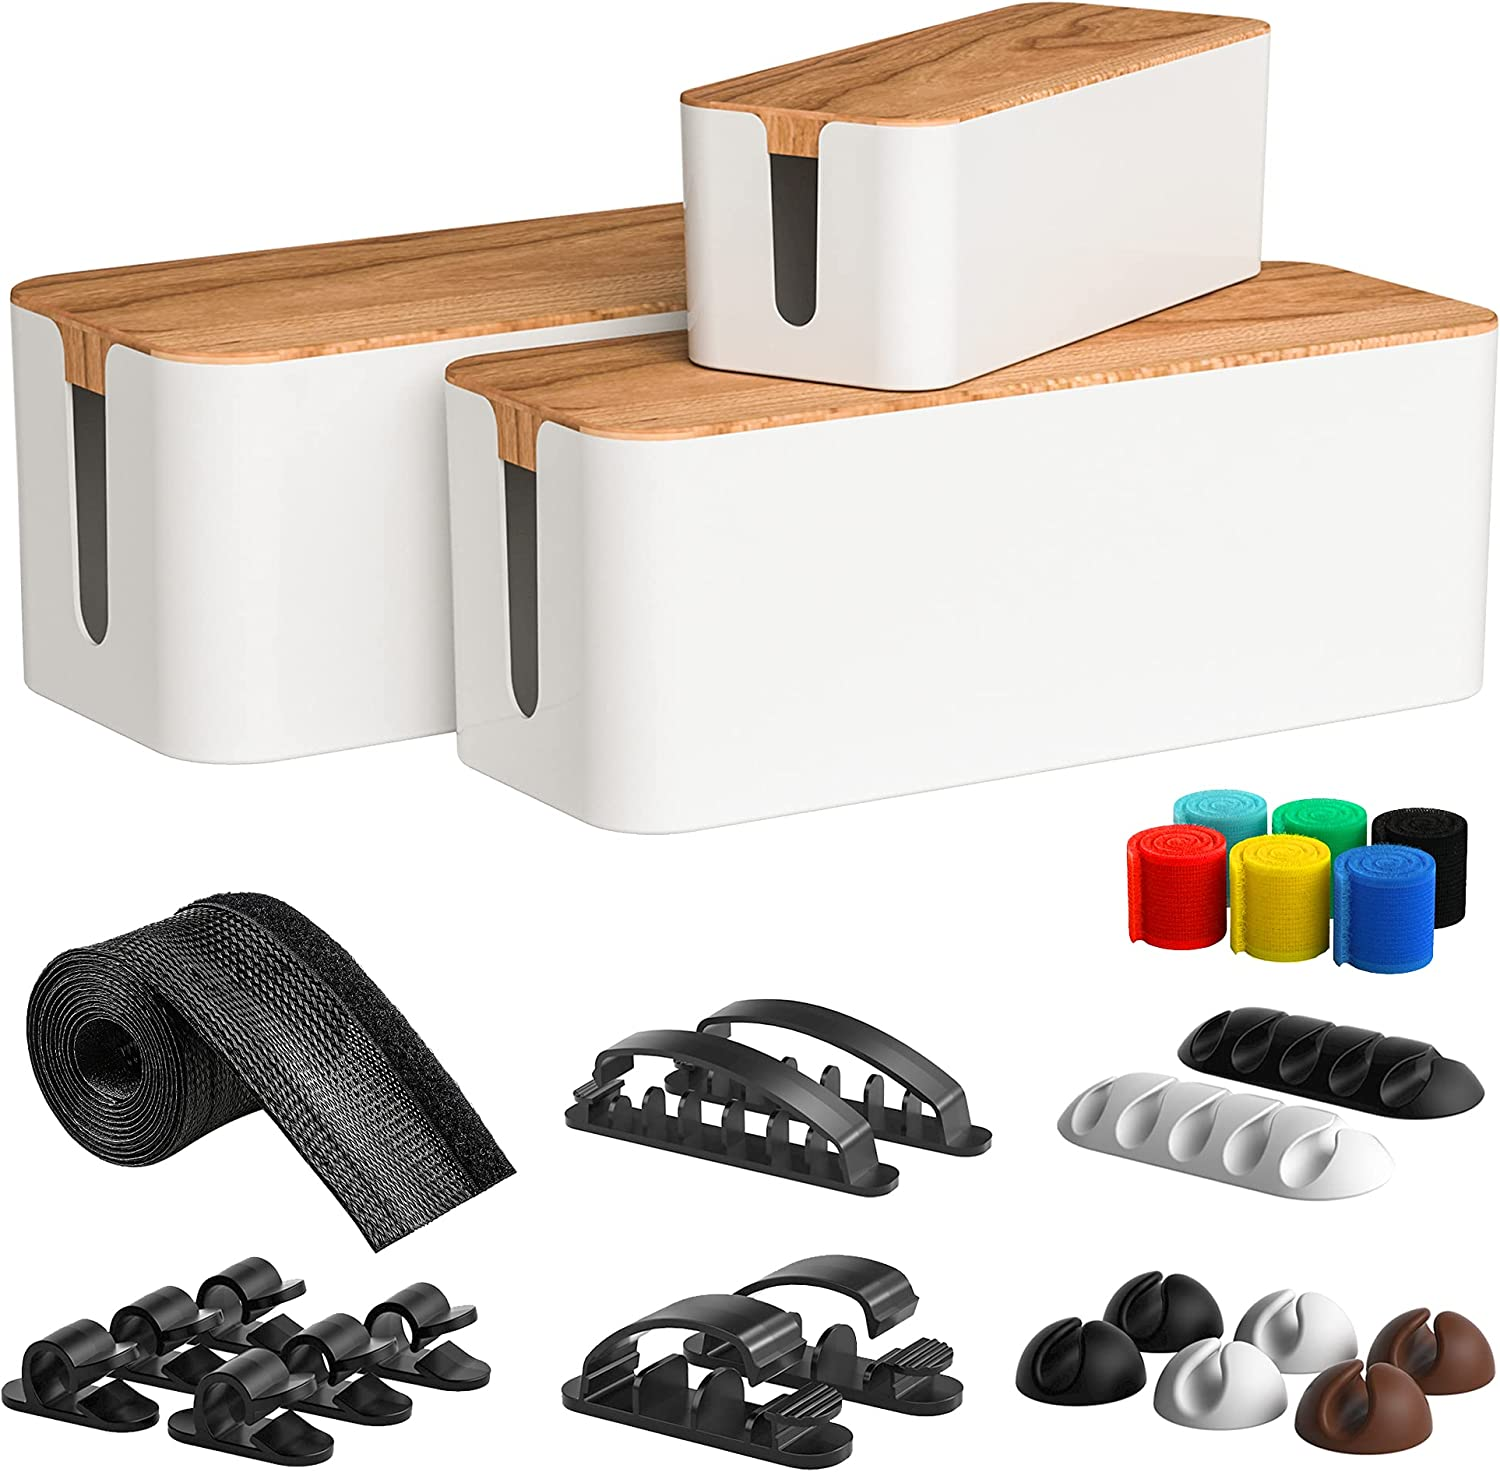 Cable Management Box 3 Pack with 16 Cable Clips&Sleeve Set-Large&Medium&Small Wooden Style Cable Organizer Box to Hide Wires&Power Strips | Cord Organizer Box | Cable Organizer for Home&Office [White]